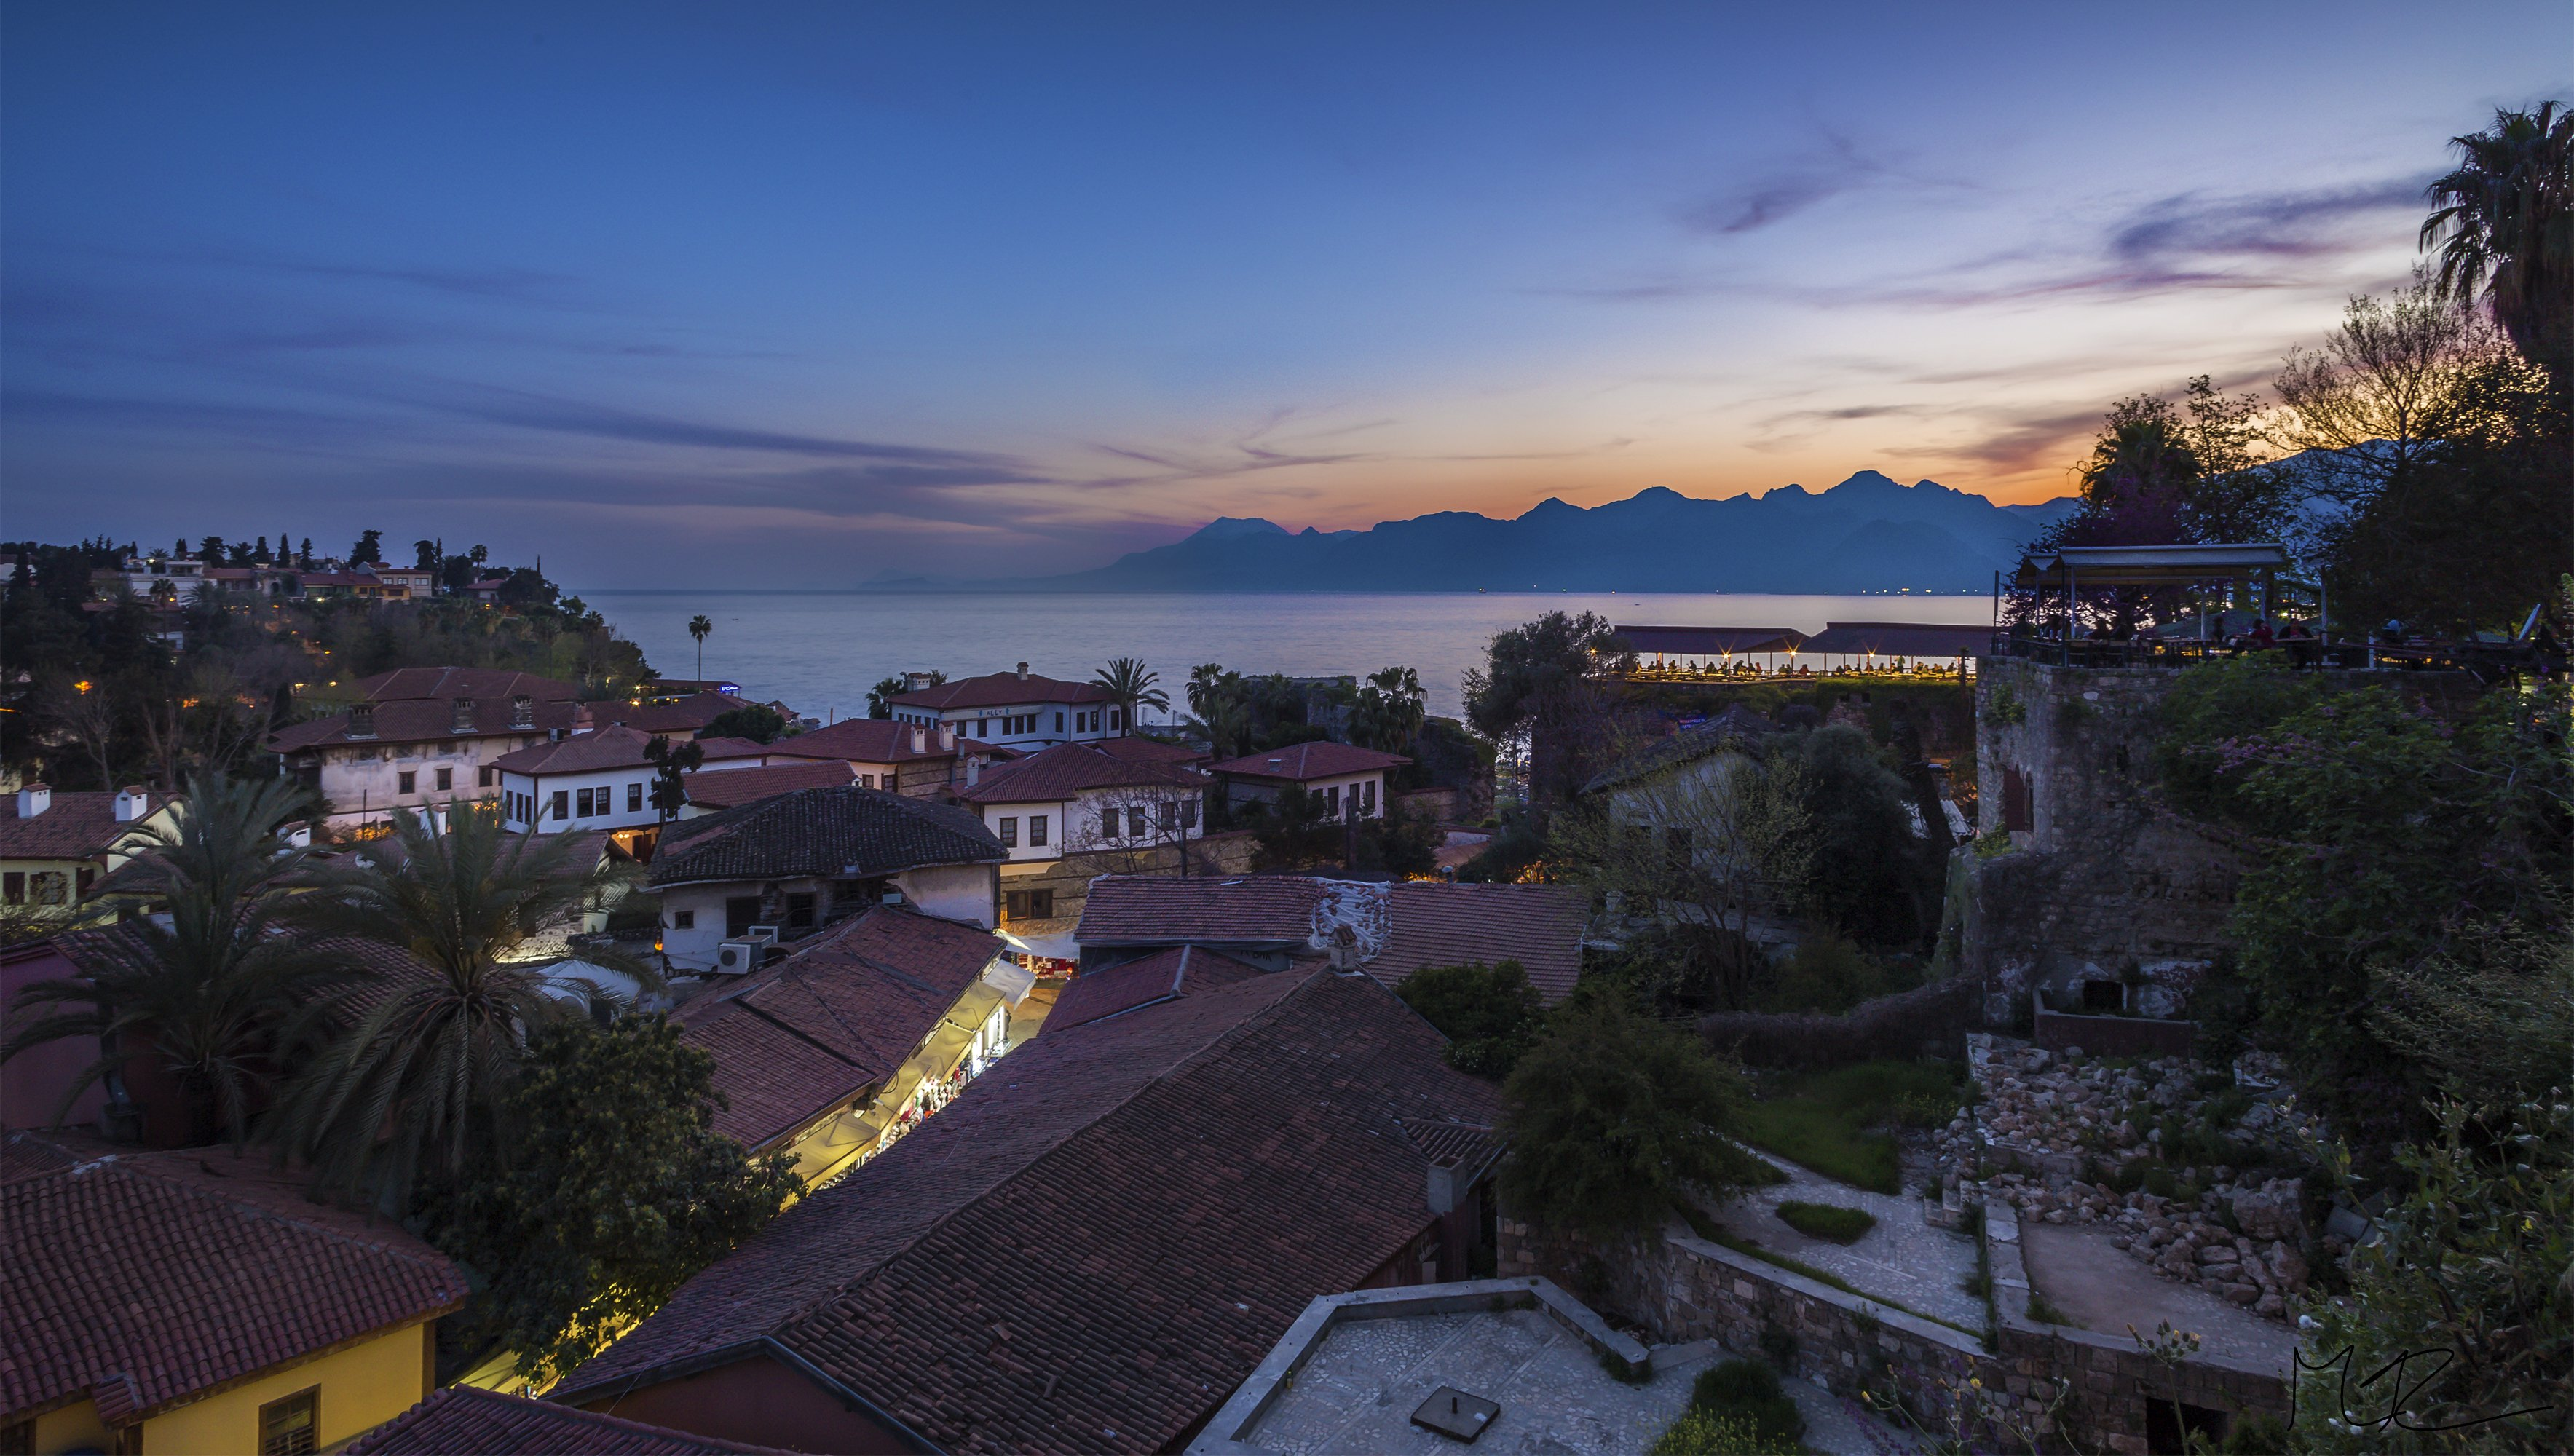 Sunset over Antalya